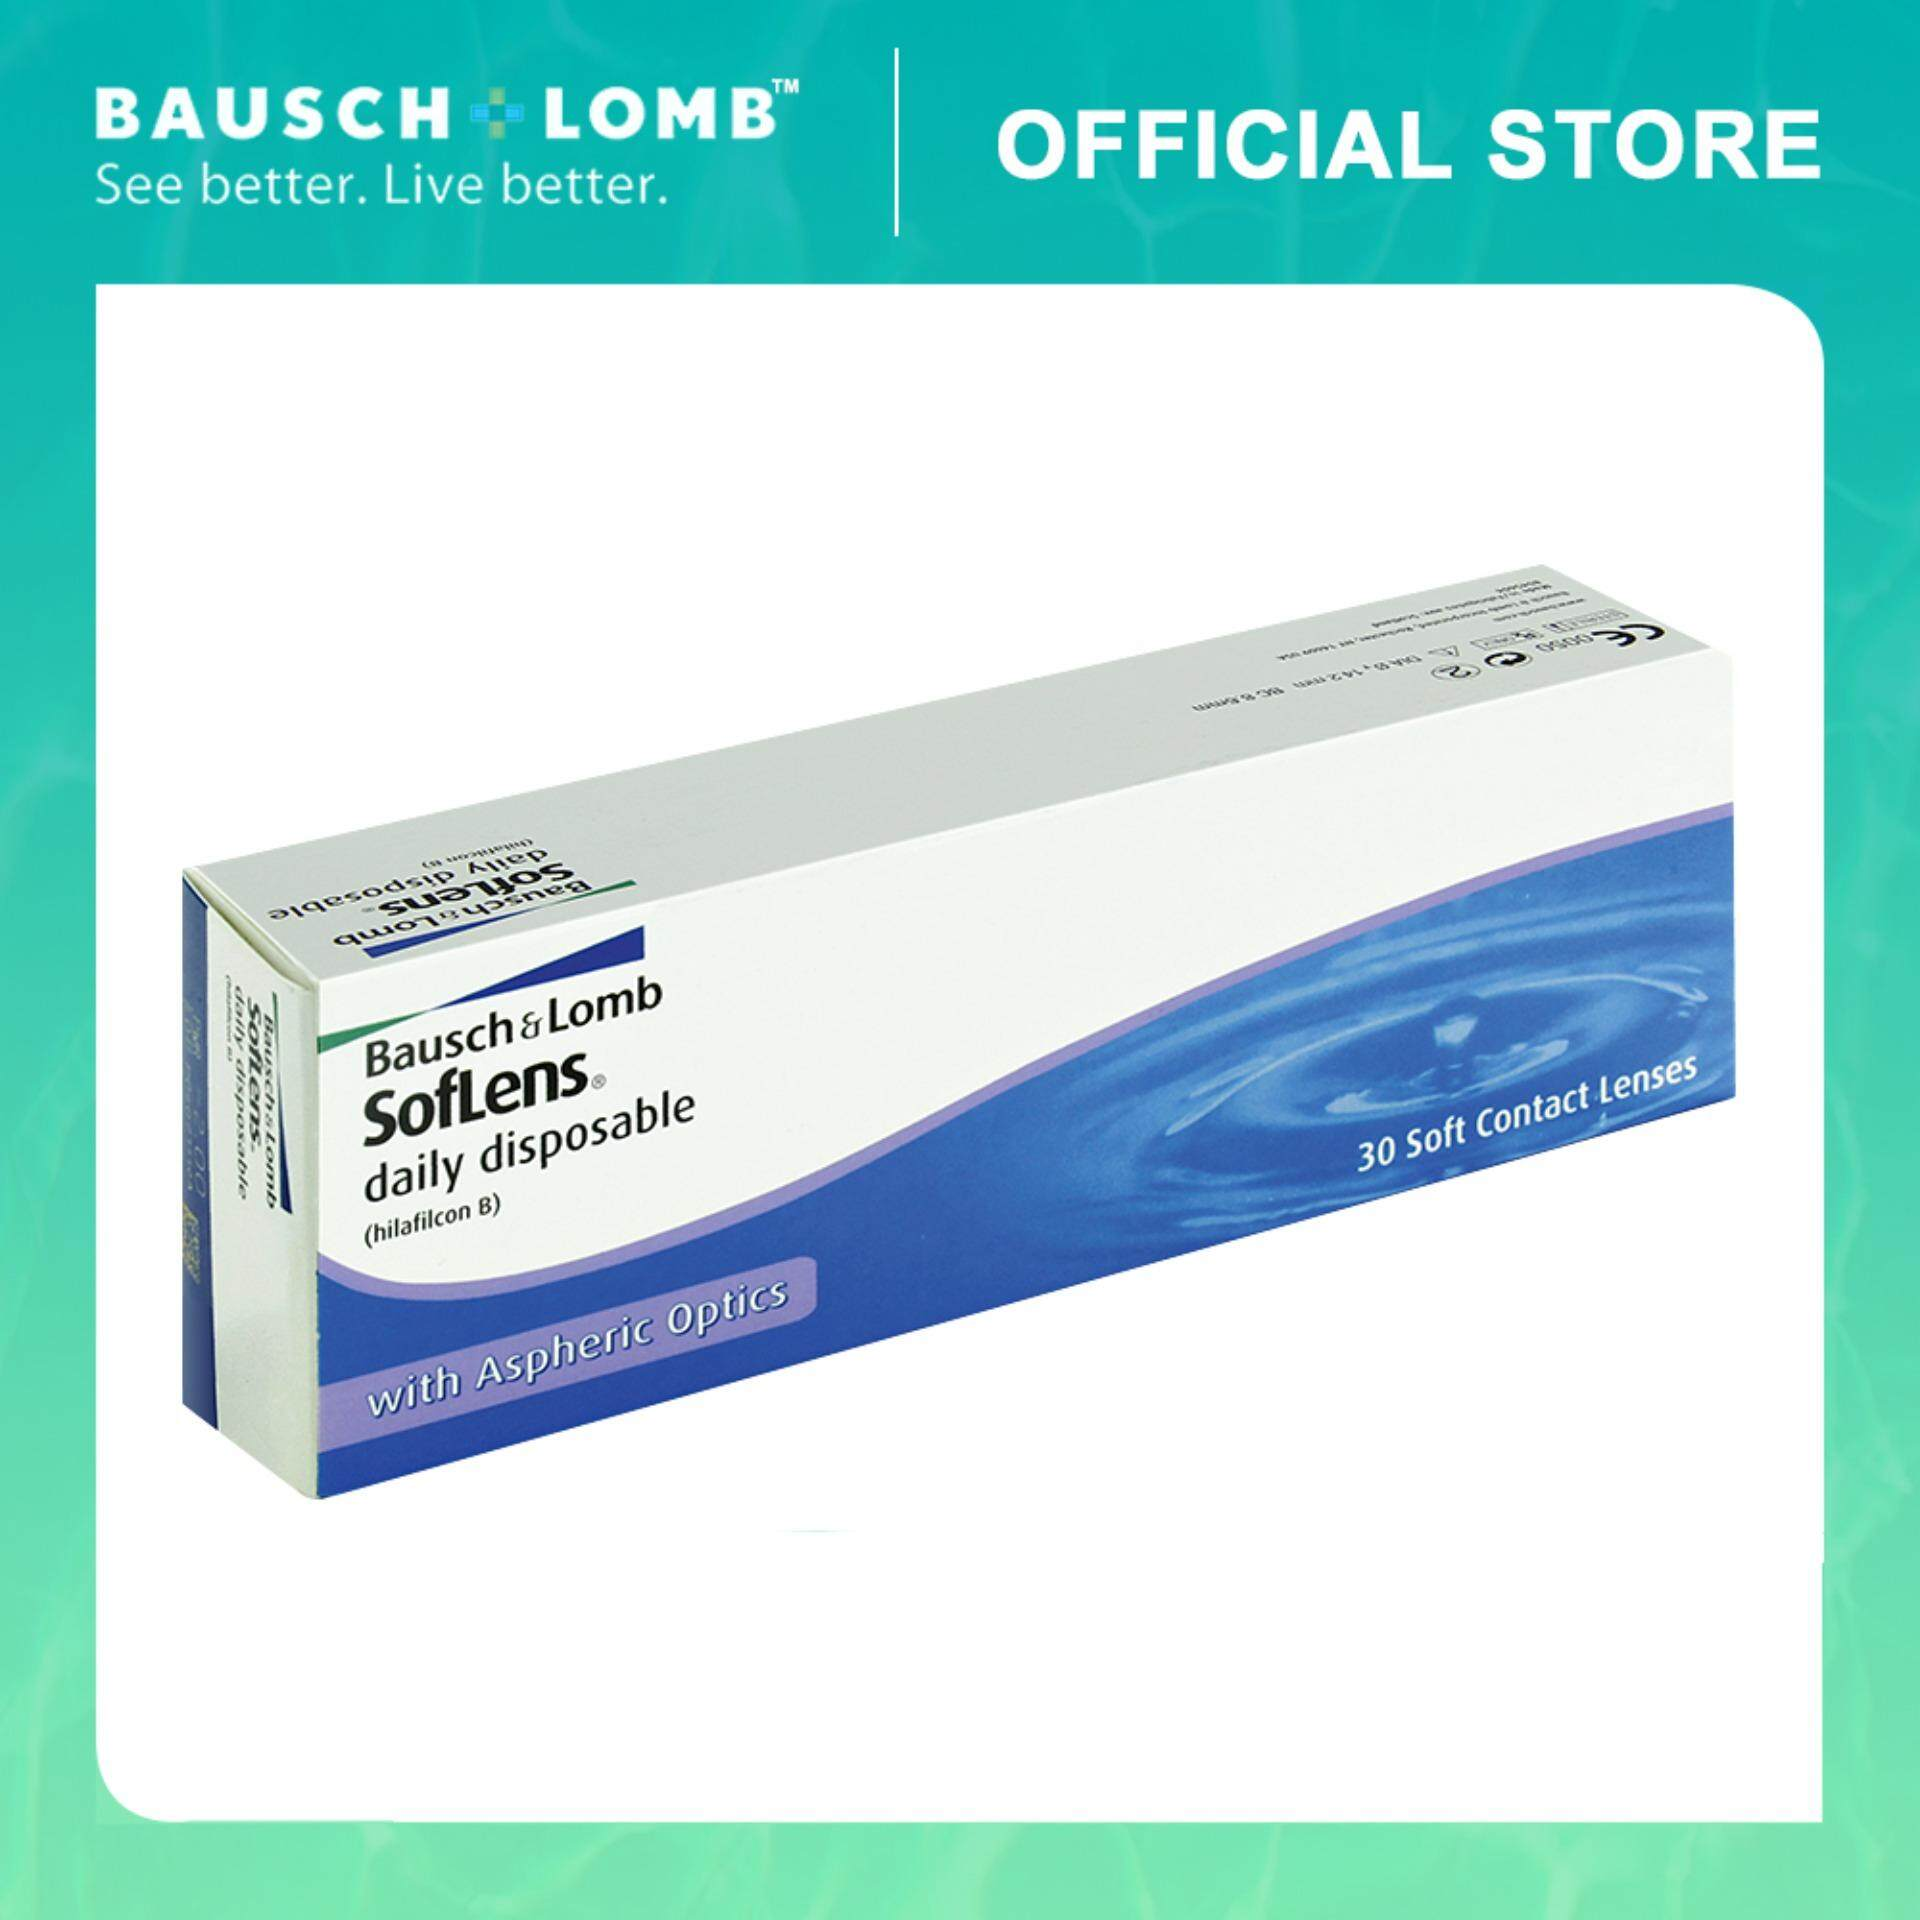 Bausch & Lomb SofLens Daily Disposable 30 Pcs Contact Lenses